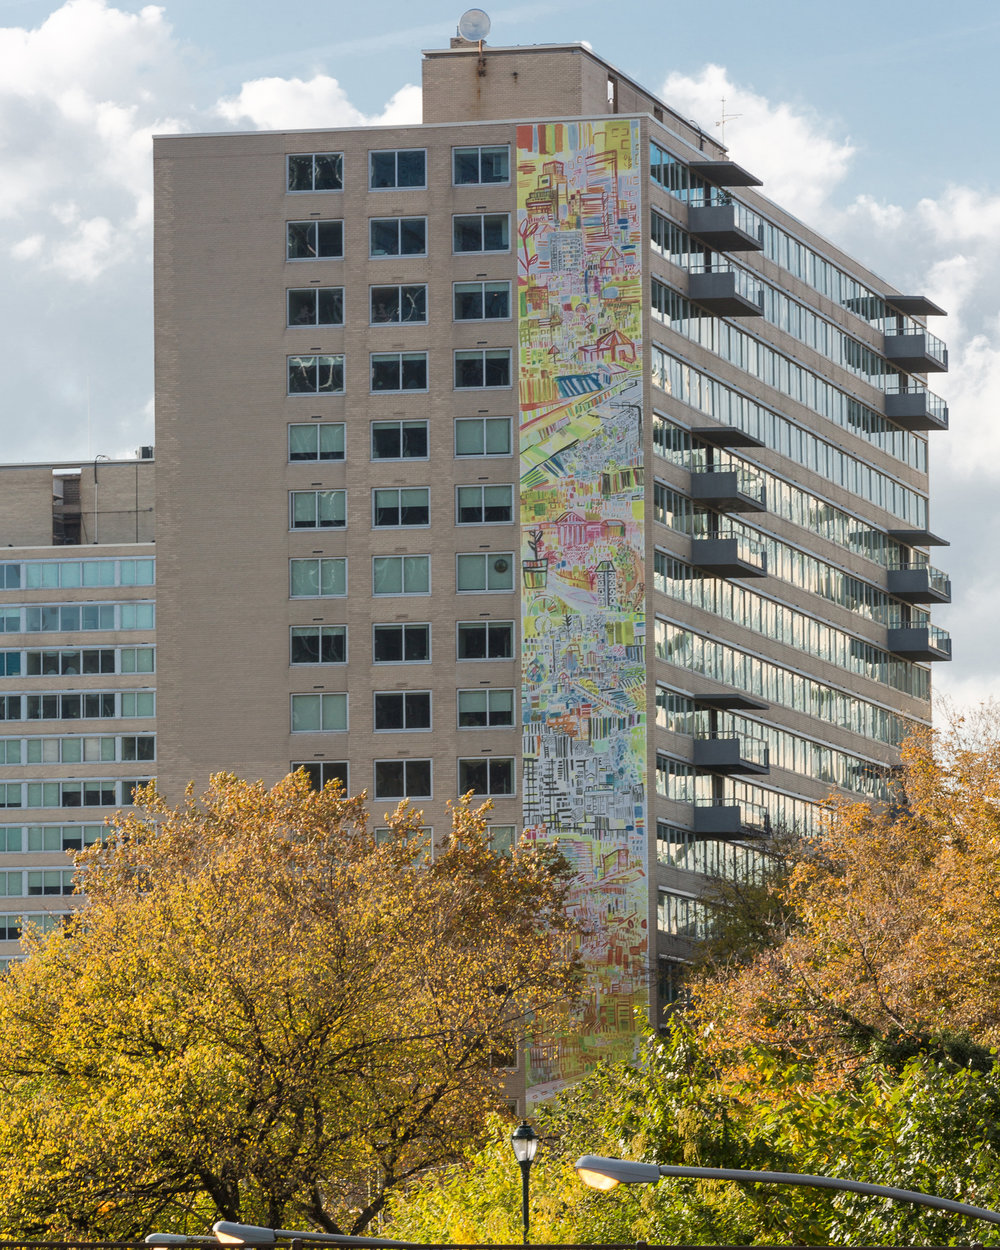 Parkway Daydreams, Parktowne Apartments, 2017  A project with The Philadelphia Mural Arts Program. Dedicated at the 2017 Parkway Centennial  Photography by Steve Weinik